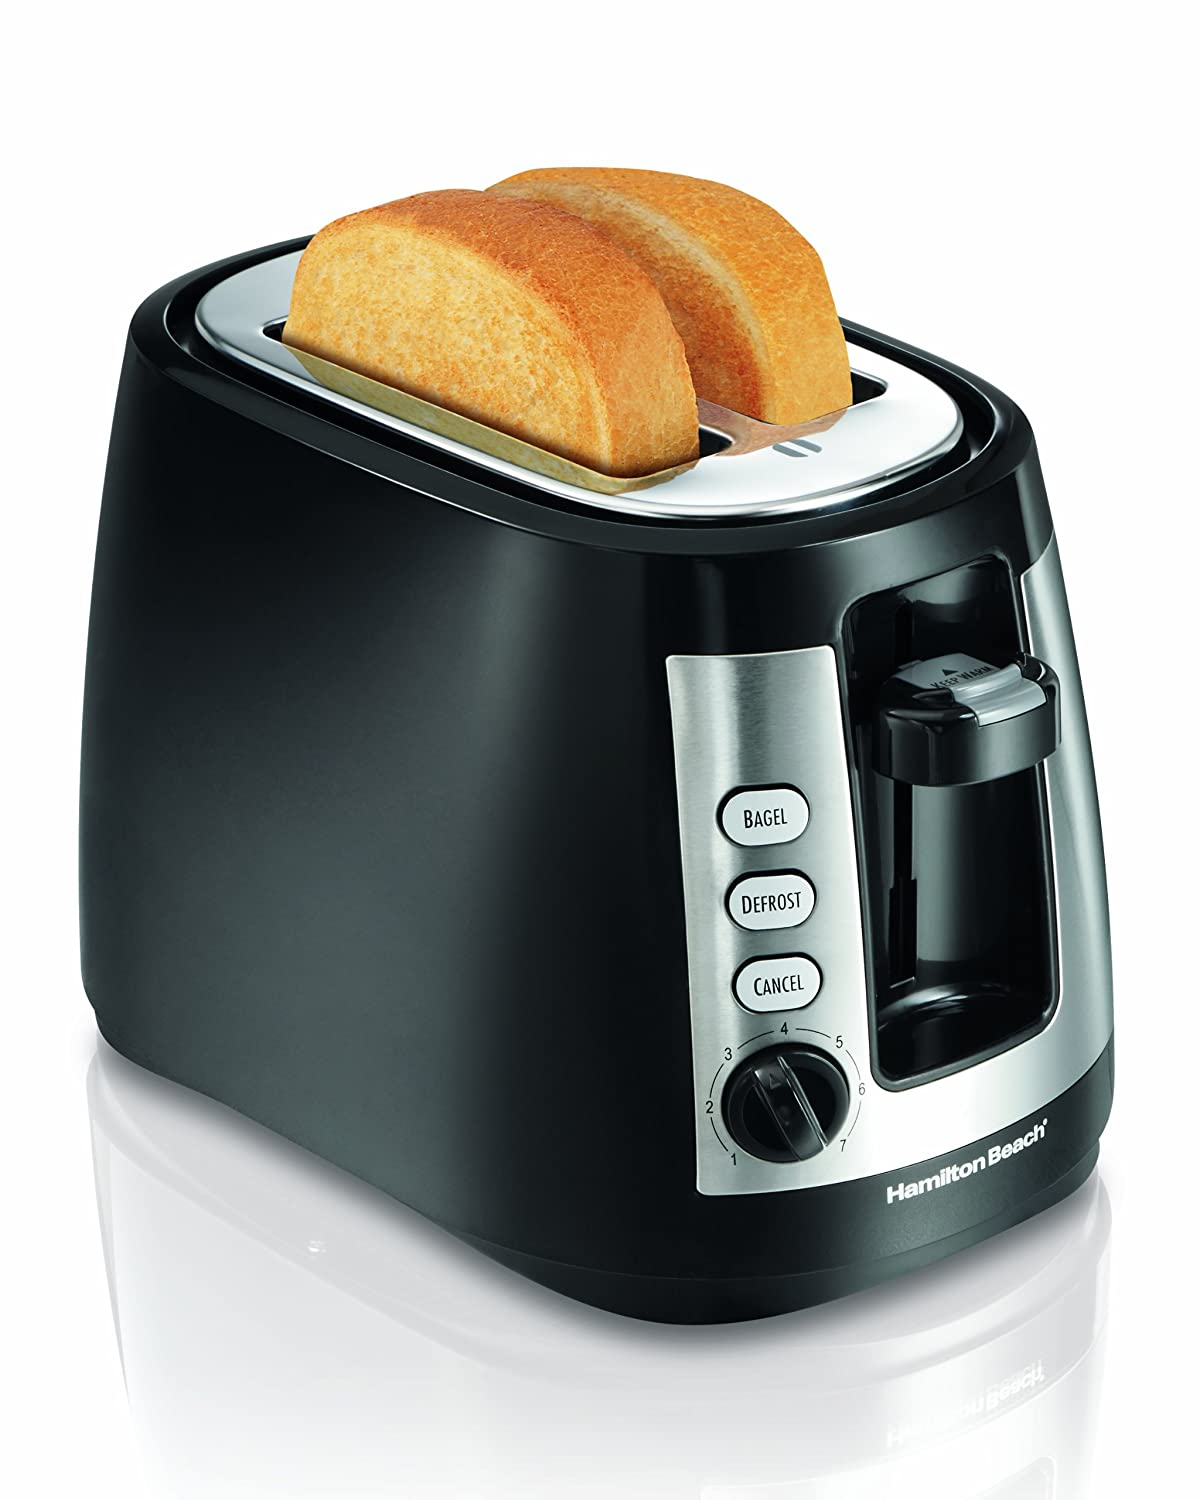 Hamilton Beach Warm Mode 2-Slice Toaster (22810)